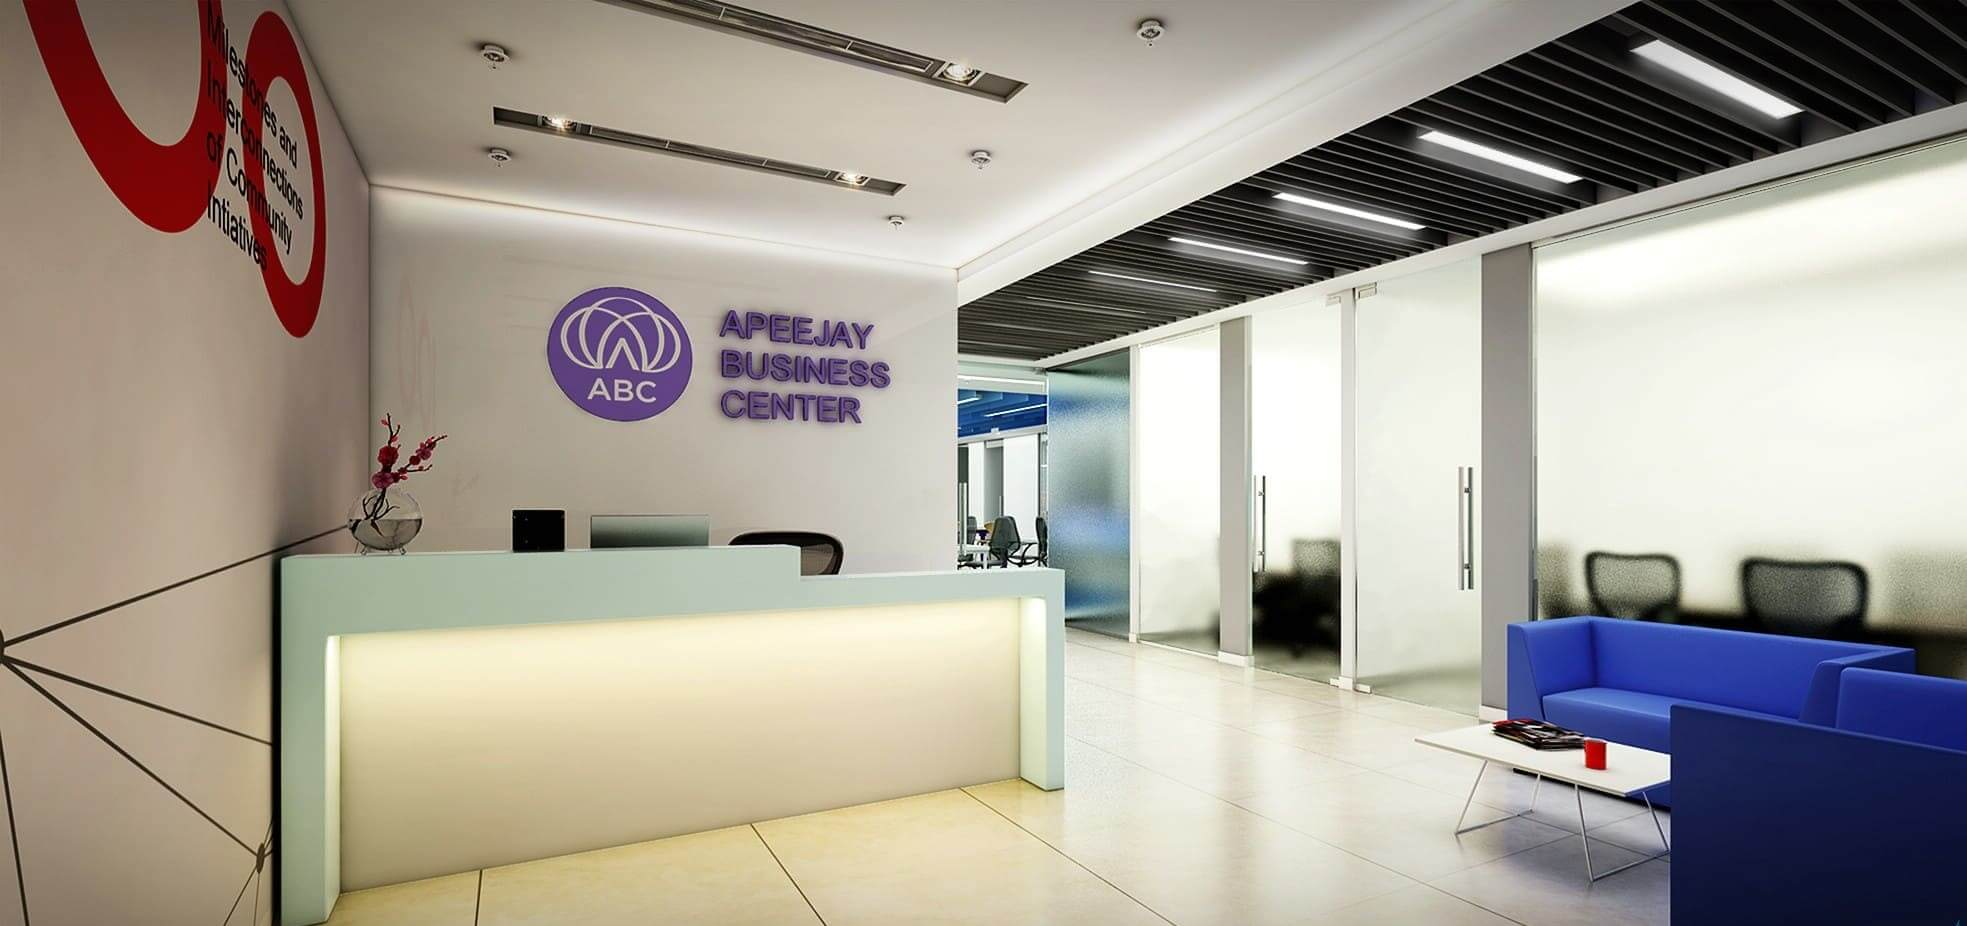 apeejay business centre| Bookofficenow